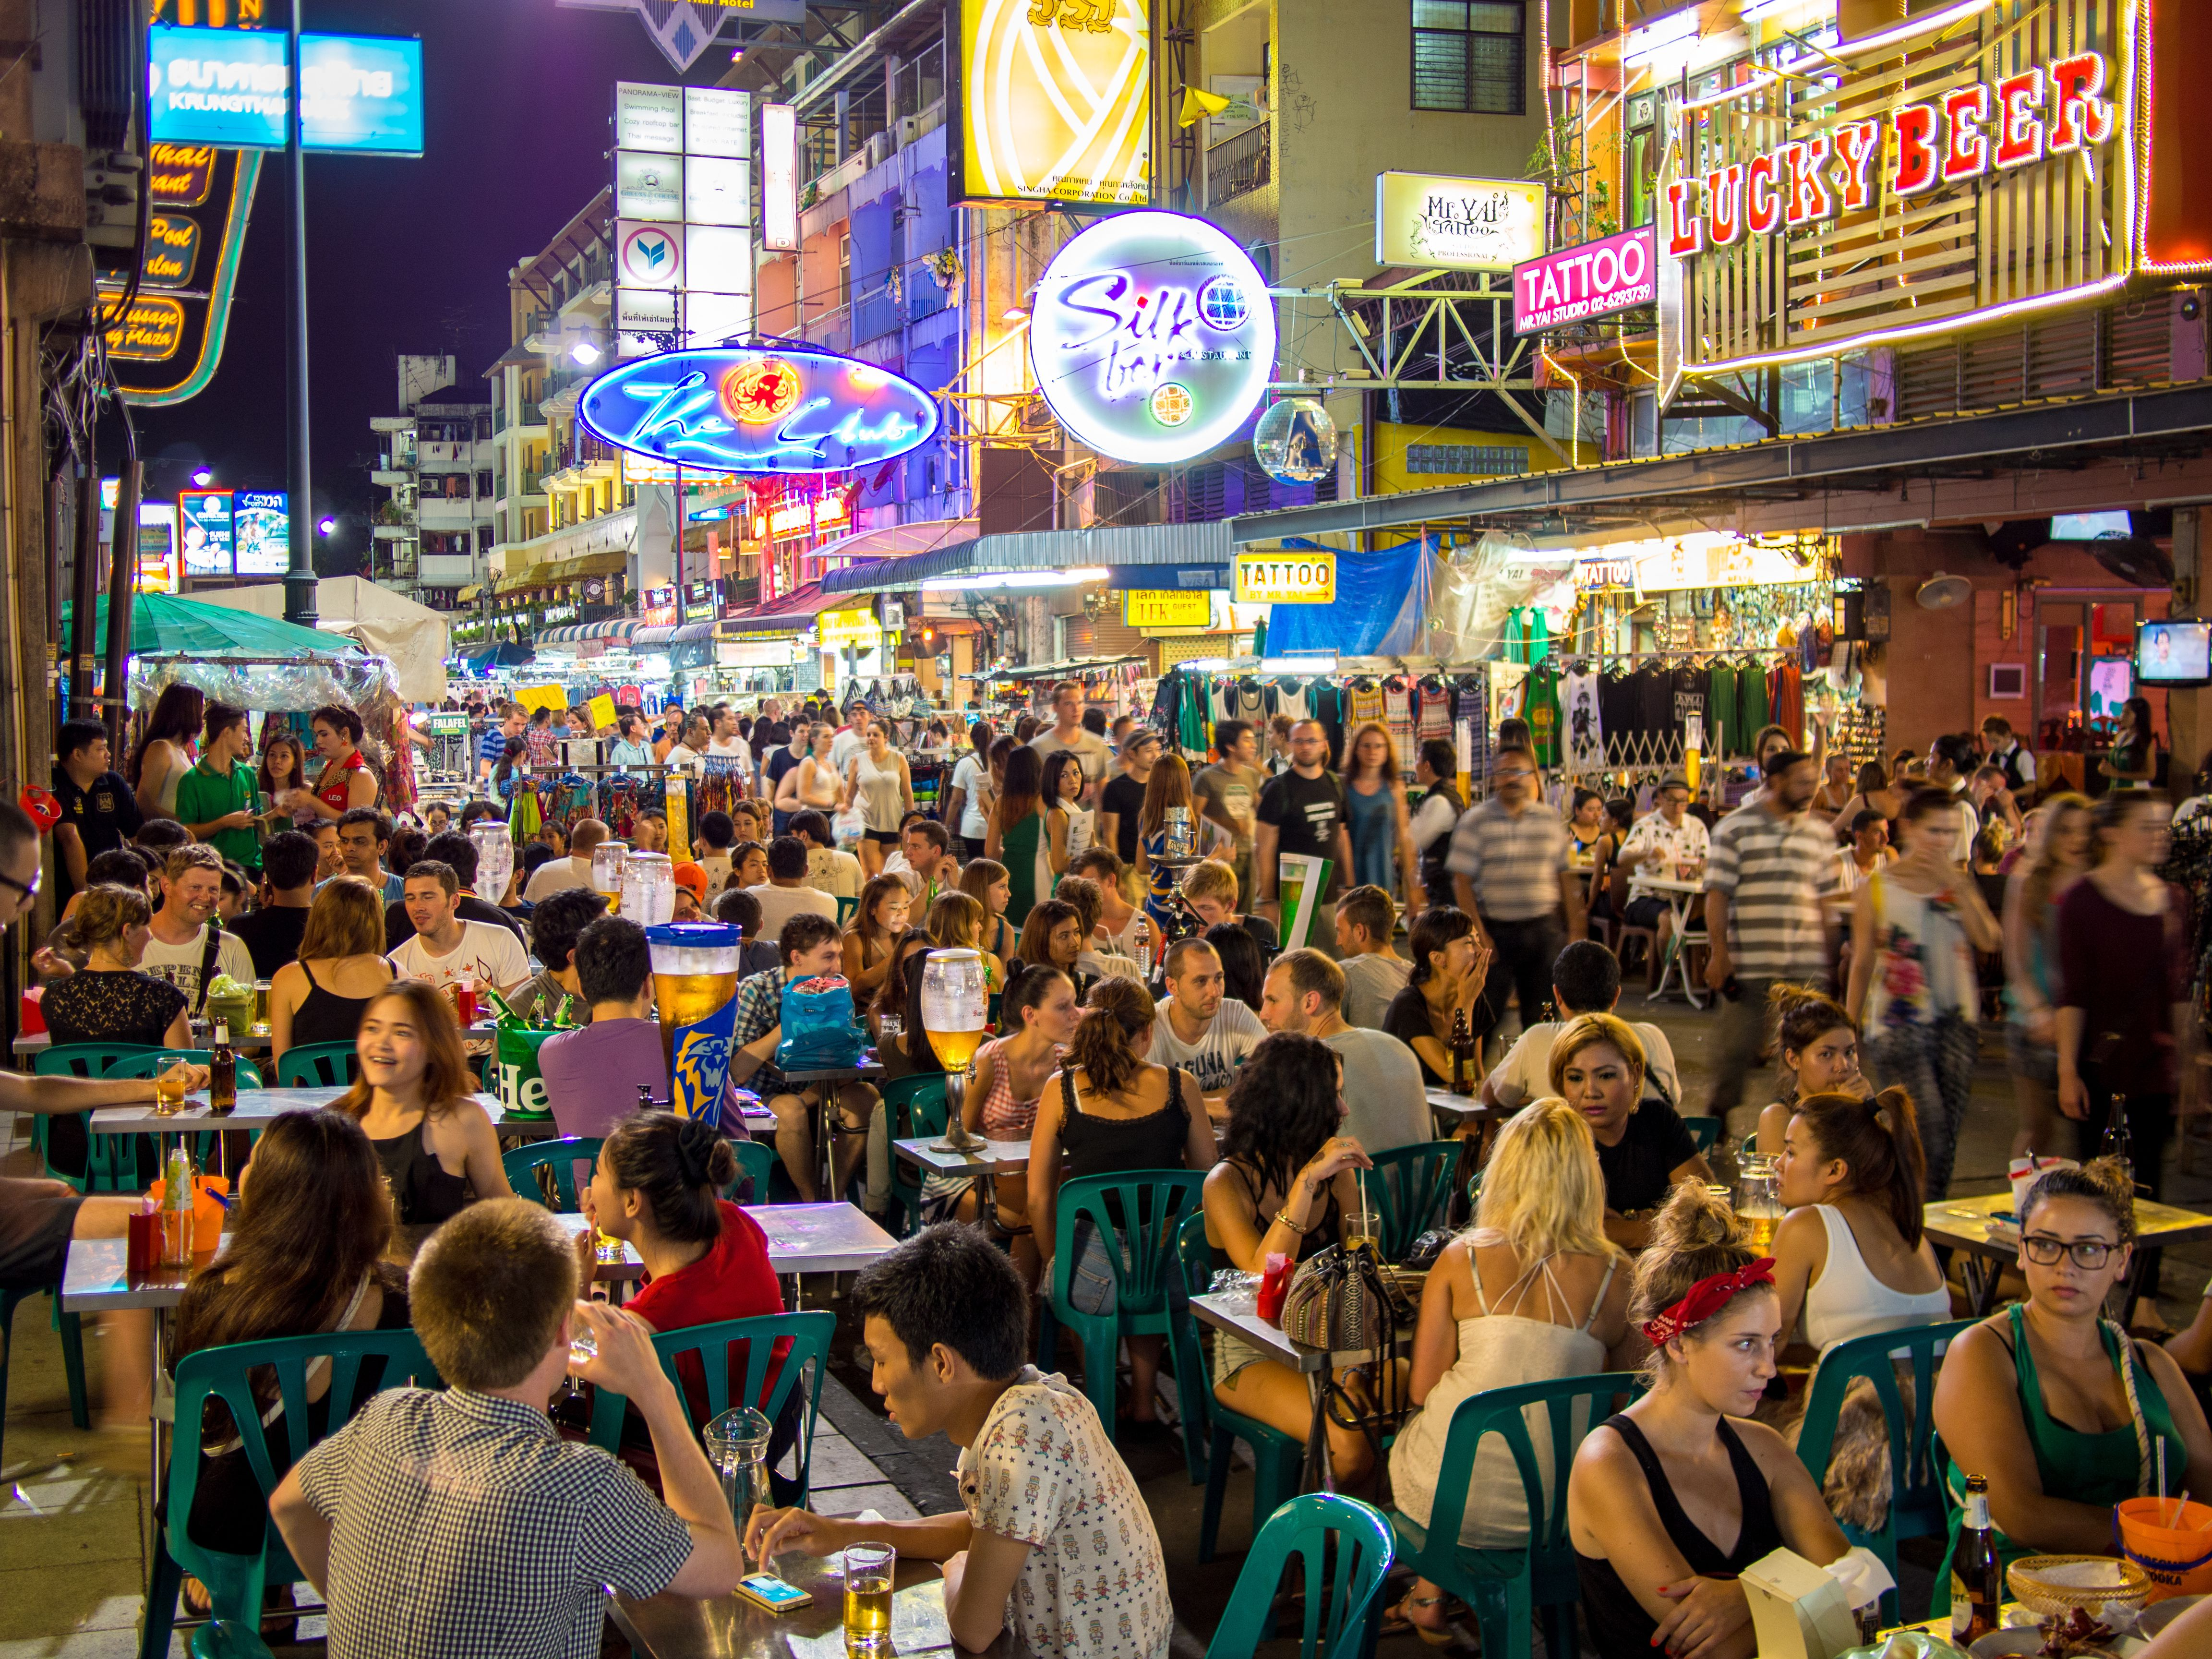 South Street Auto >> Khao San Road in Bangkok: What Is It?